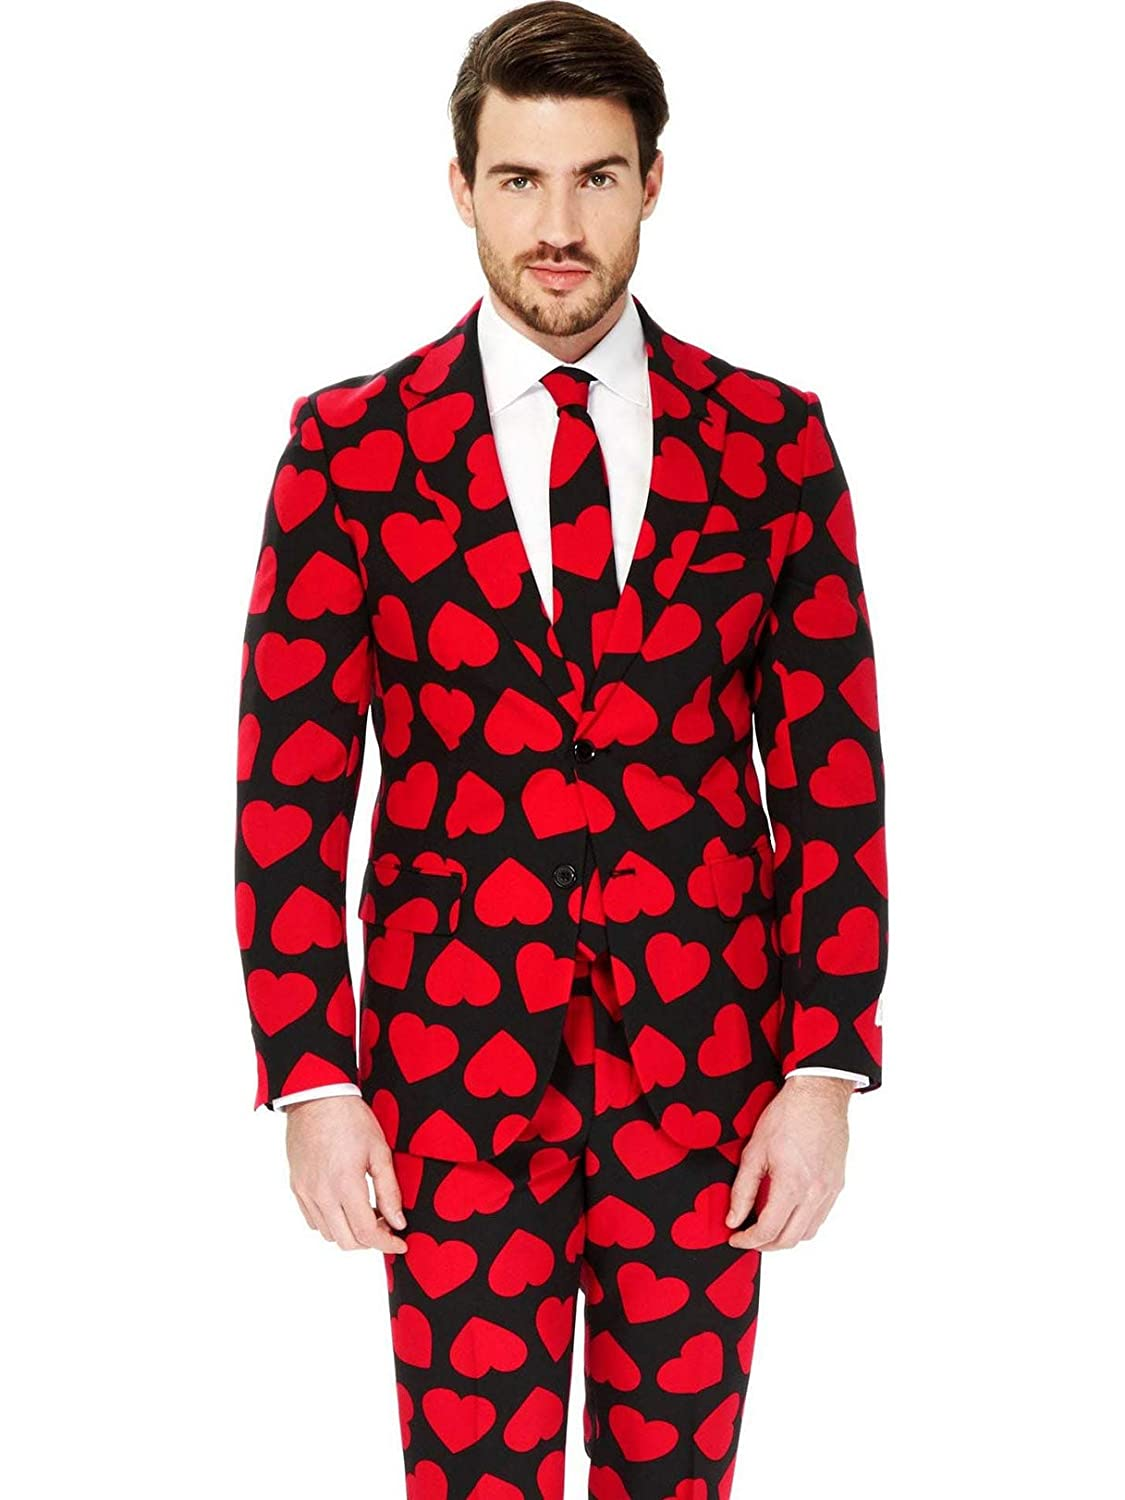 Generique - - - Opposuit King of Hearts XL (58) b3952c